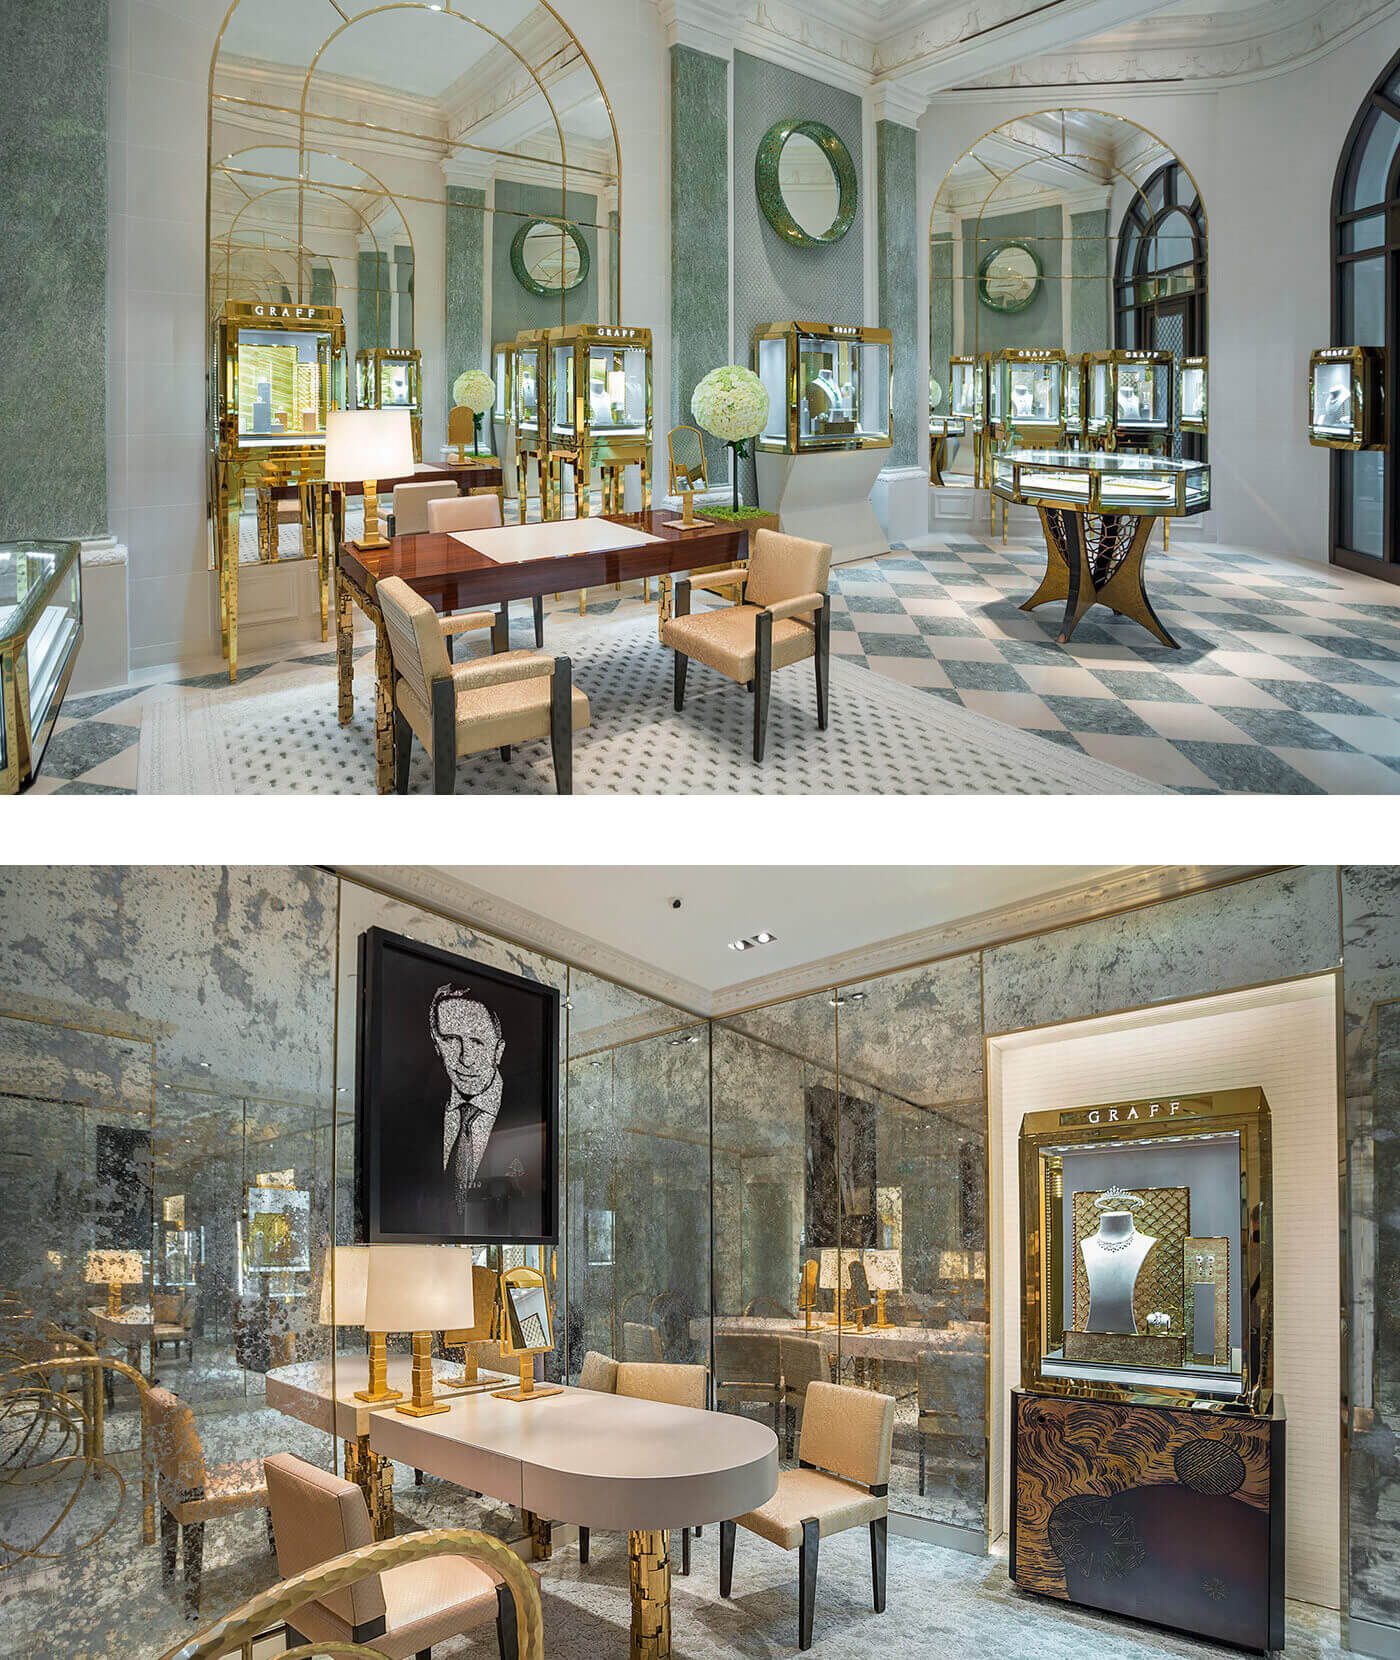 Photos of the Interior of the Graff jewellery flagship boutique in Paris, France